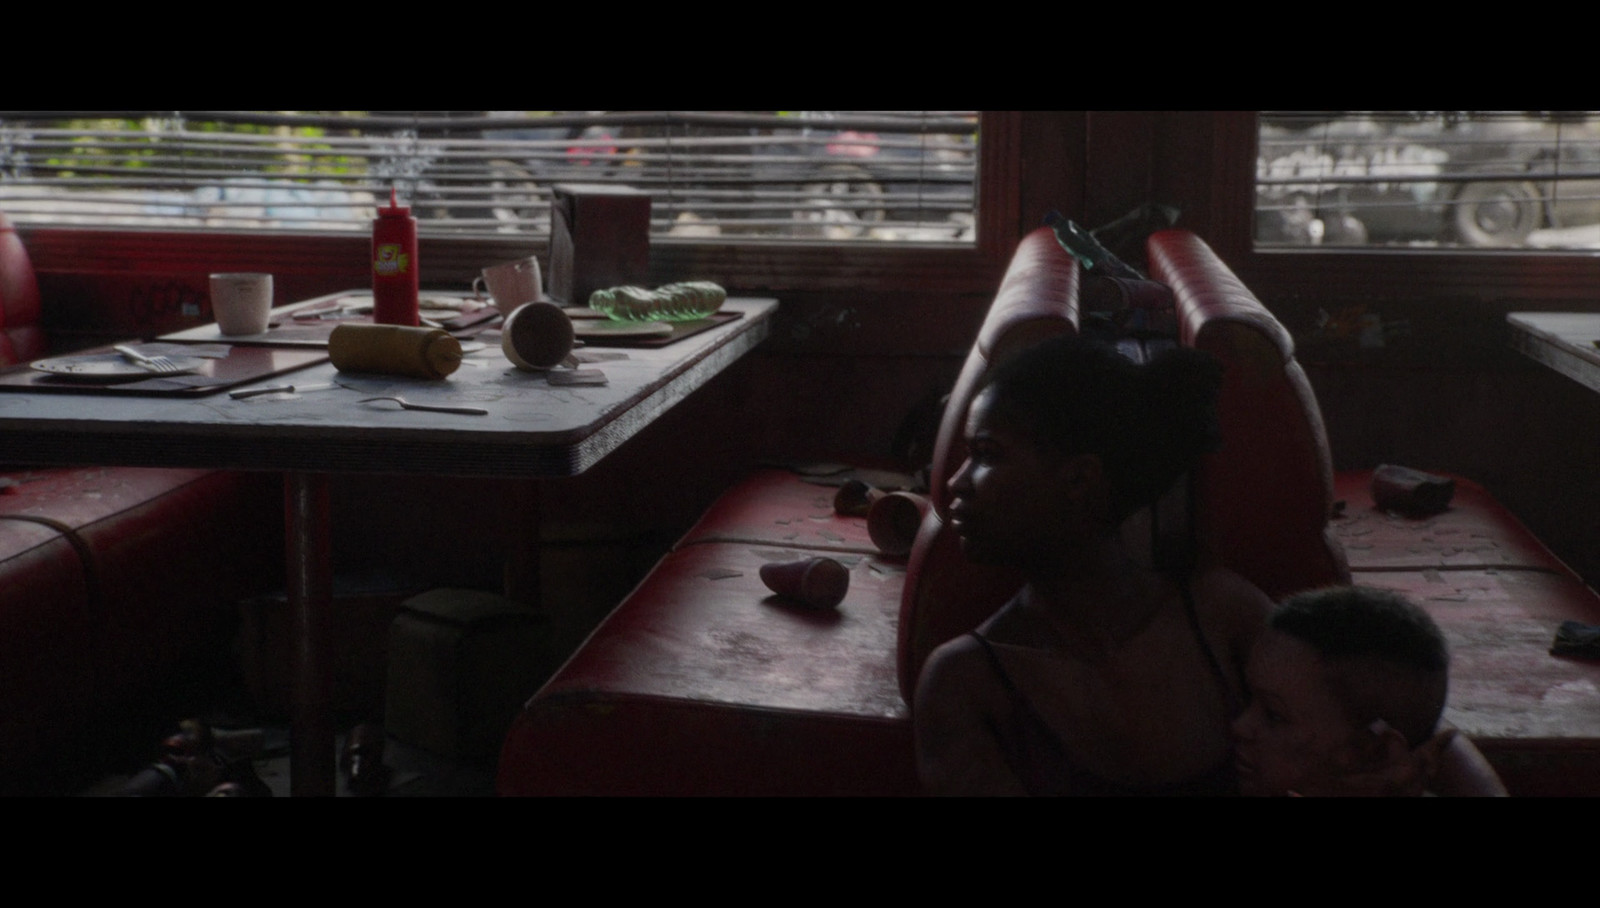 Diner, screenshot from cinematic.